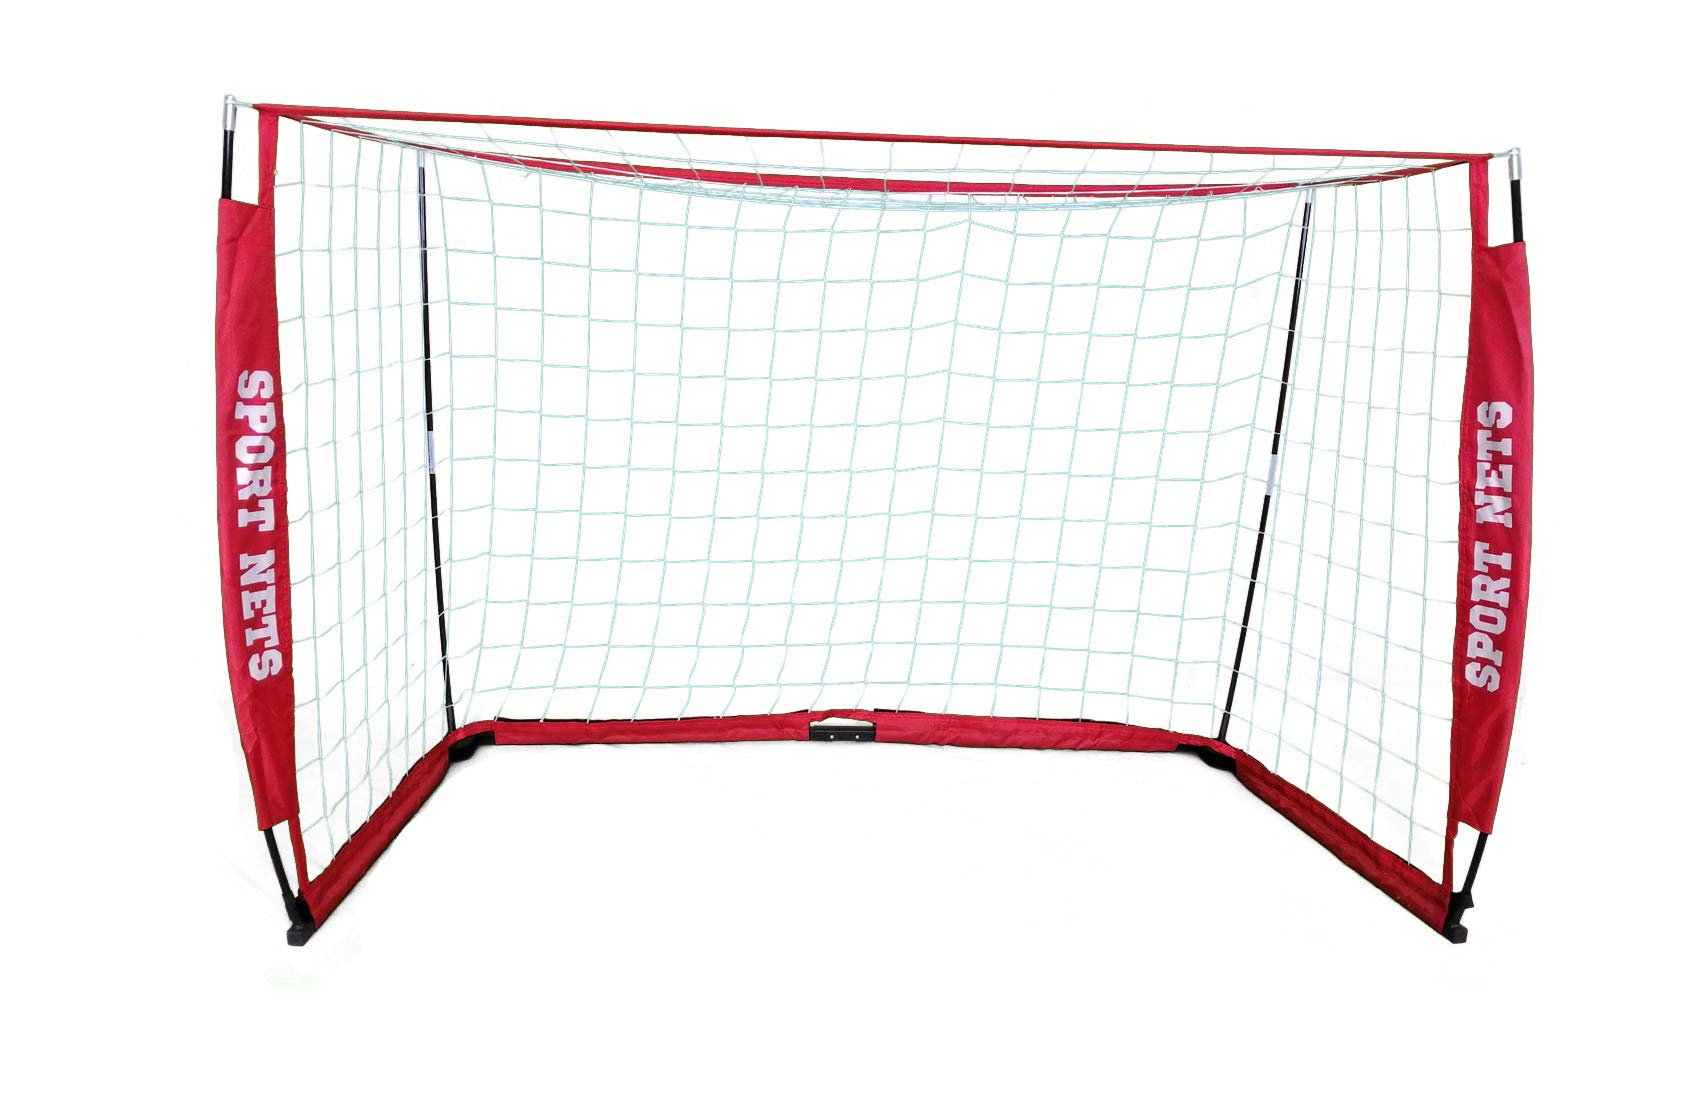 Sport Nets Portable Soccer Goal - Portable Bow Frame Soccer Net with Carry Bag - Sizes 4' X 6' - 4' X 8' - 6' X 12' (7 X 14 Soccer Goal) by Sport Nets